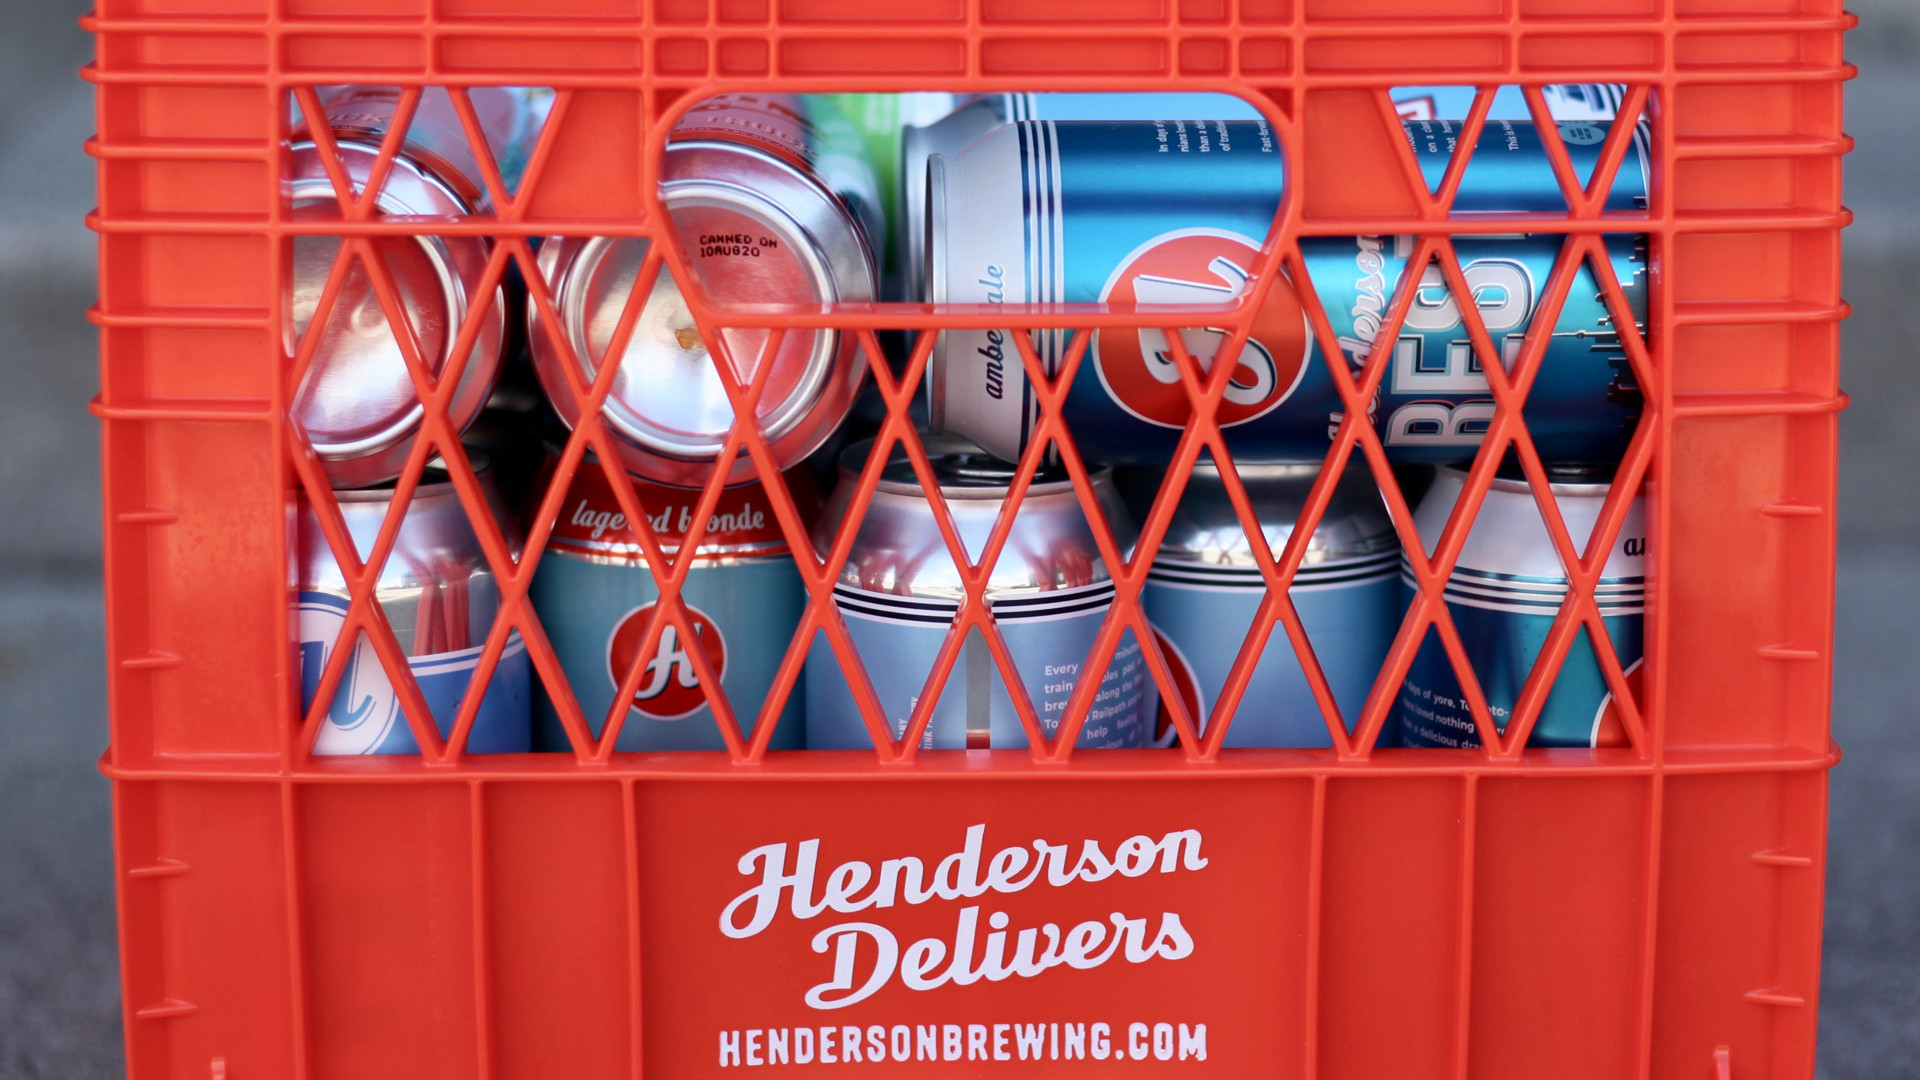 Henderson Brewing | Beer delivery from Henderson